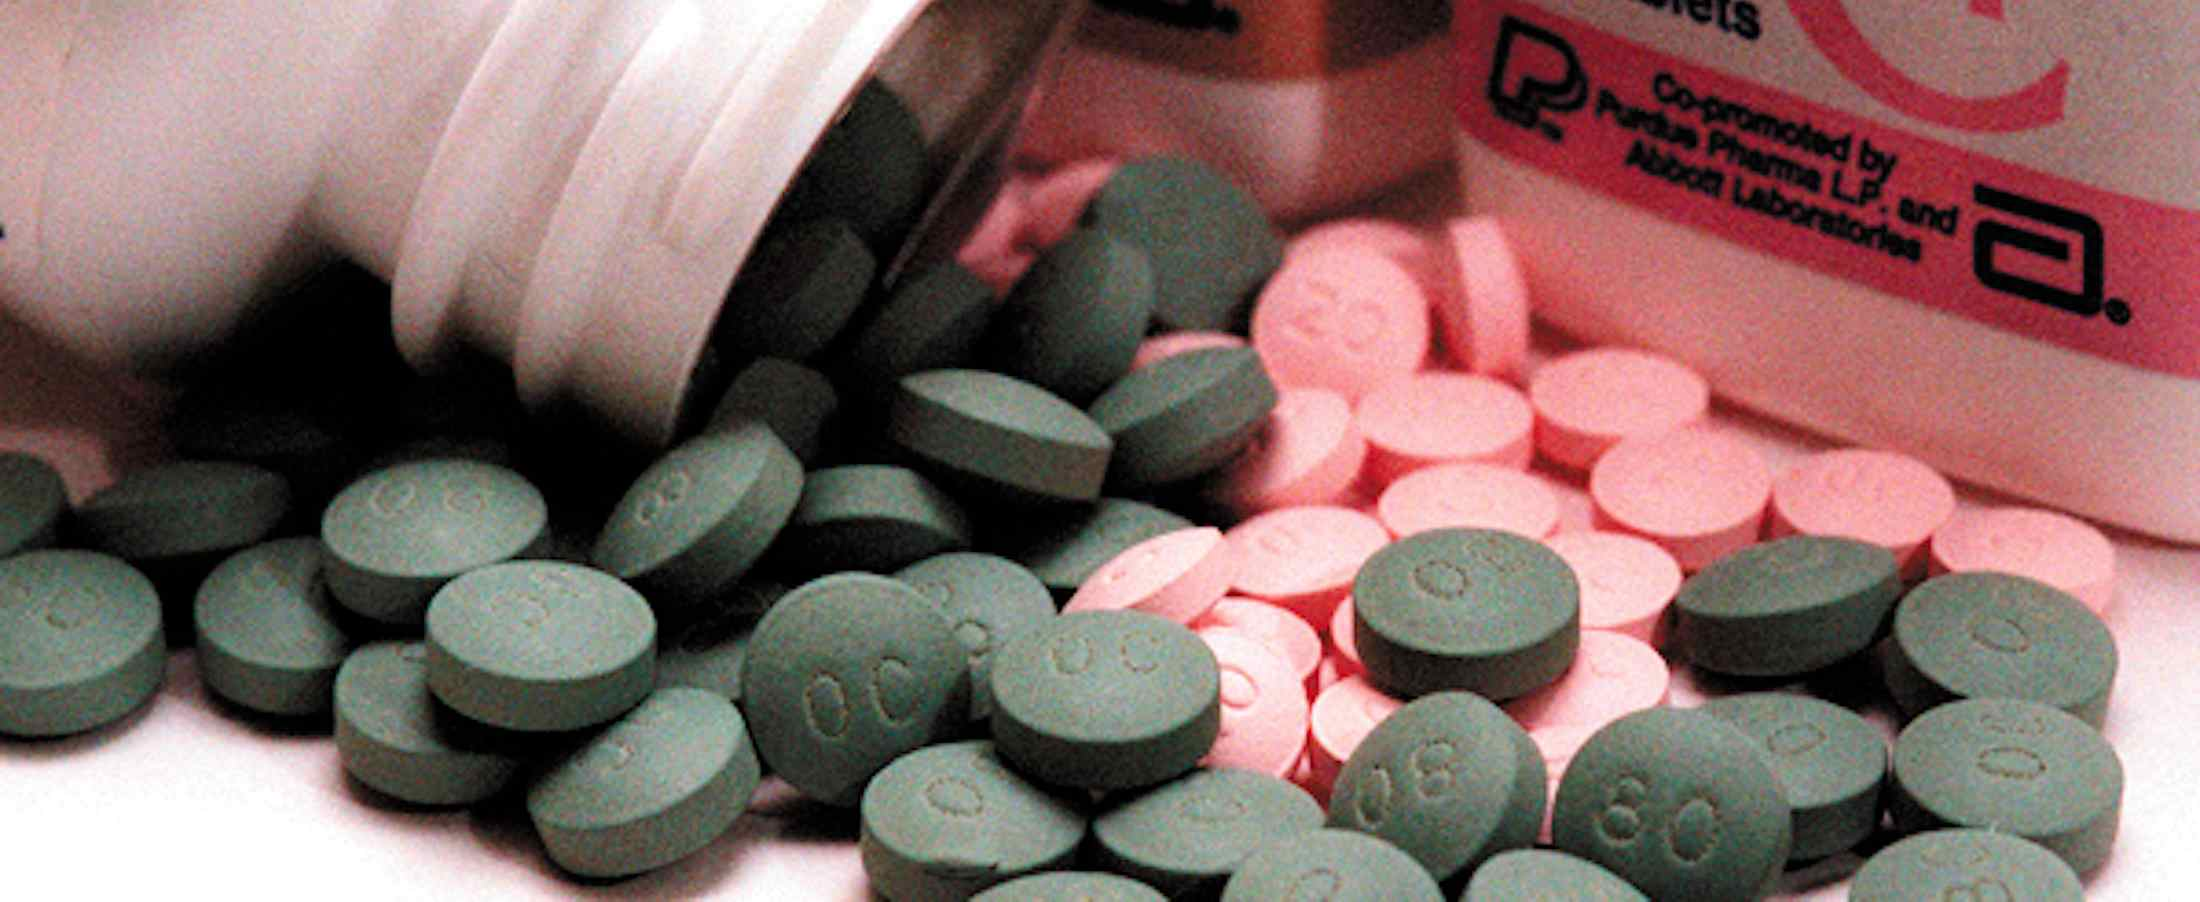 Oxycontin and Fentanyl pills spilling out of pill bottles